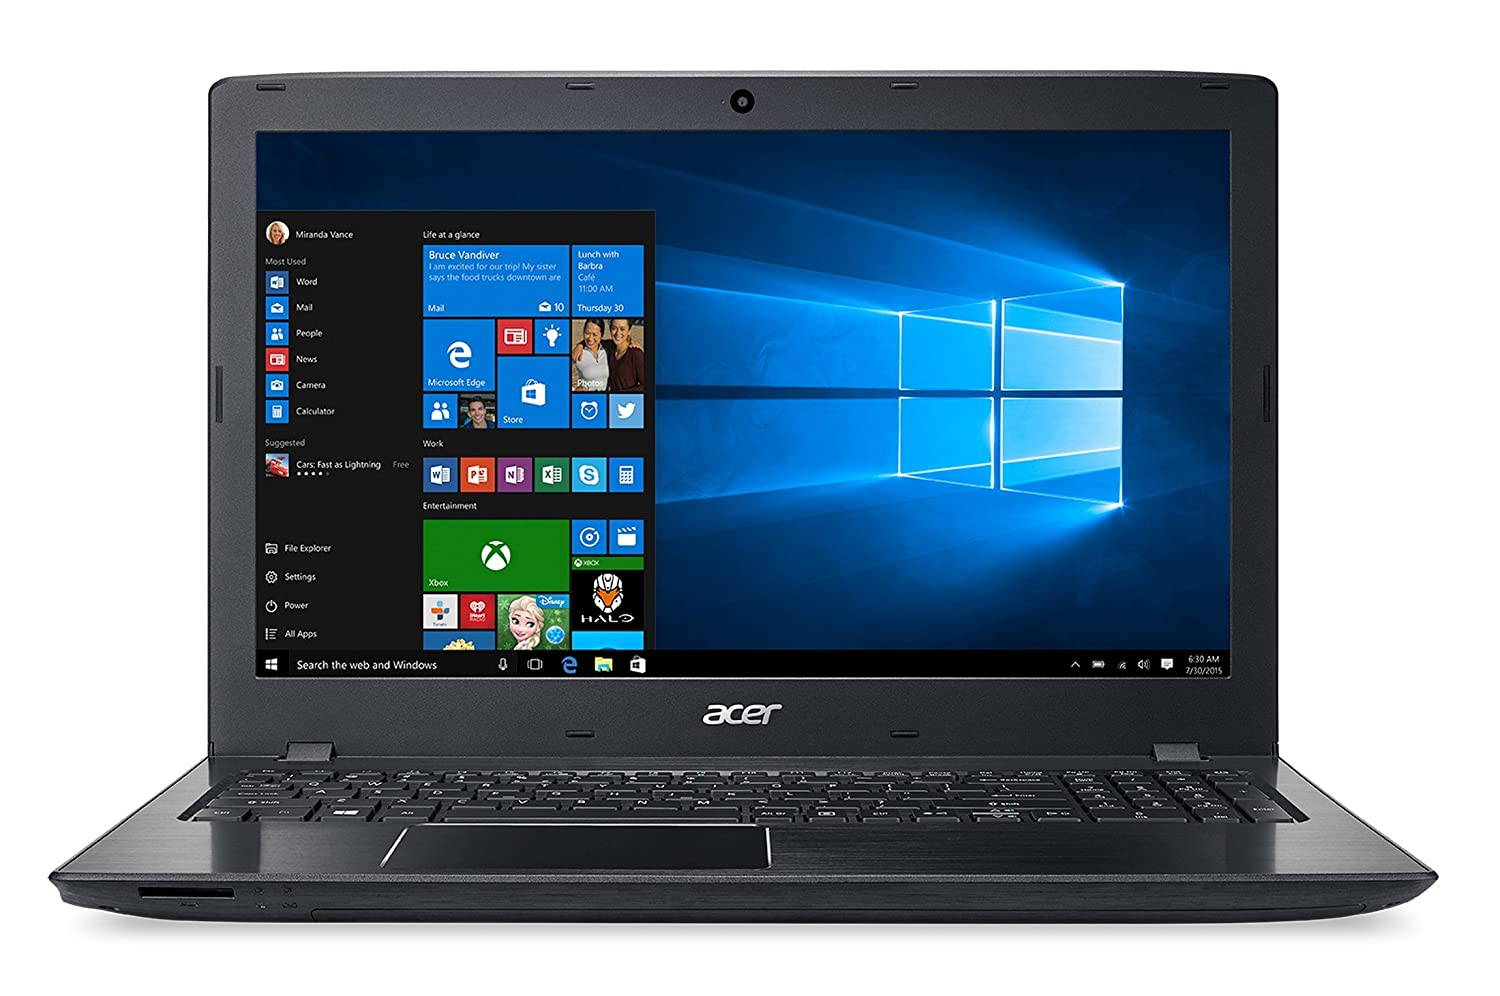 Acer Aspire E15 E5-575 15.6-inch Laptop (7th Gen Core i5-7200/8GB/1TB/Linux/2GB Graphics)